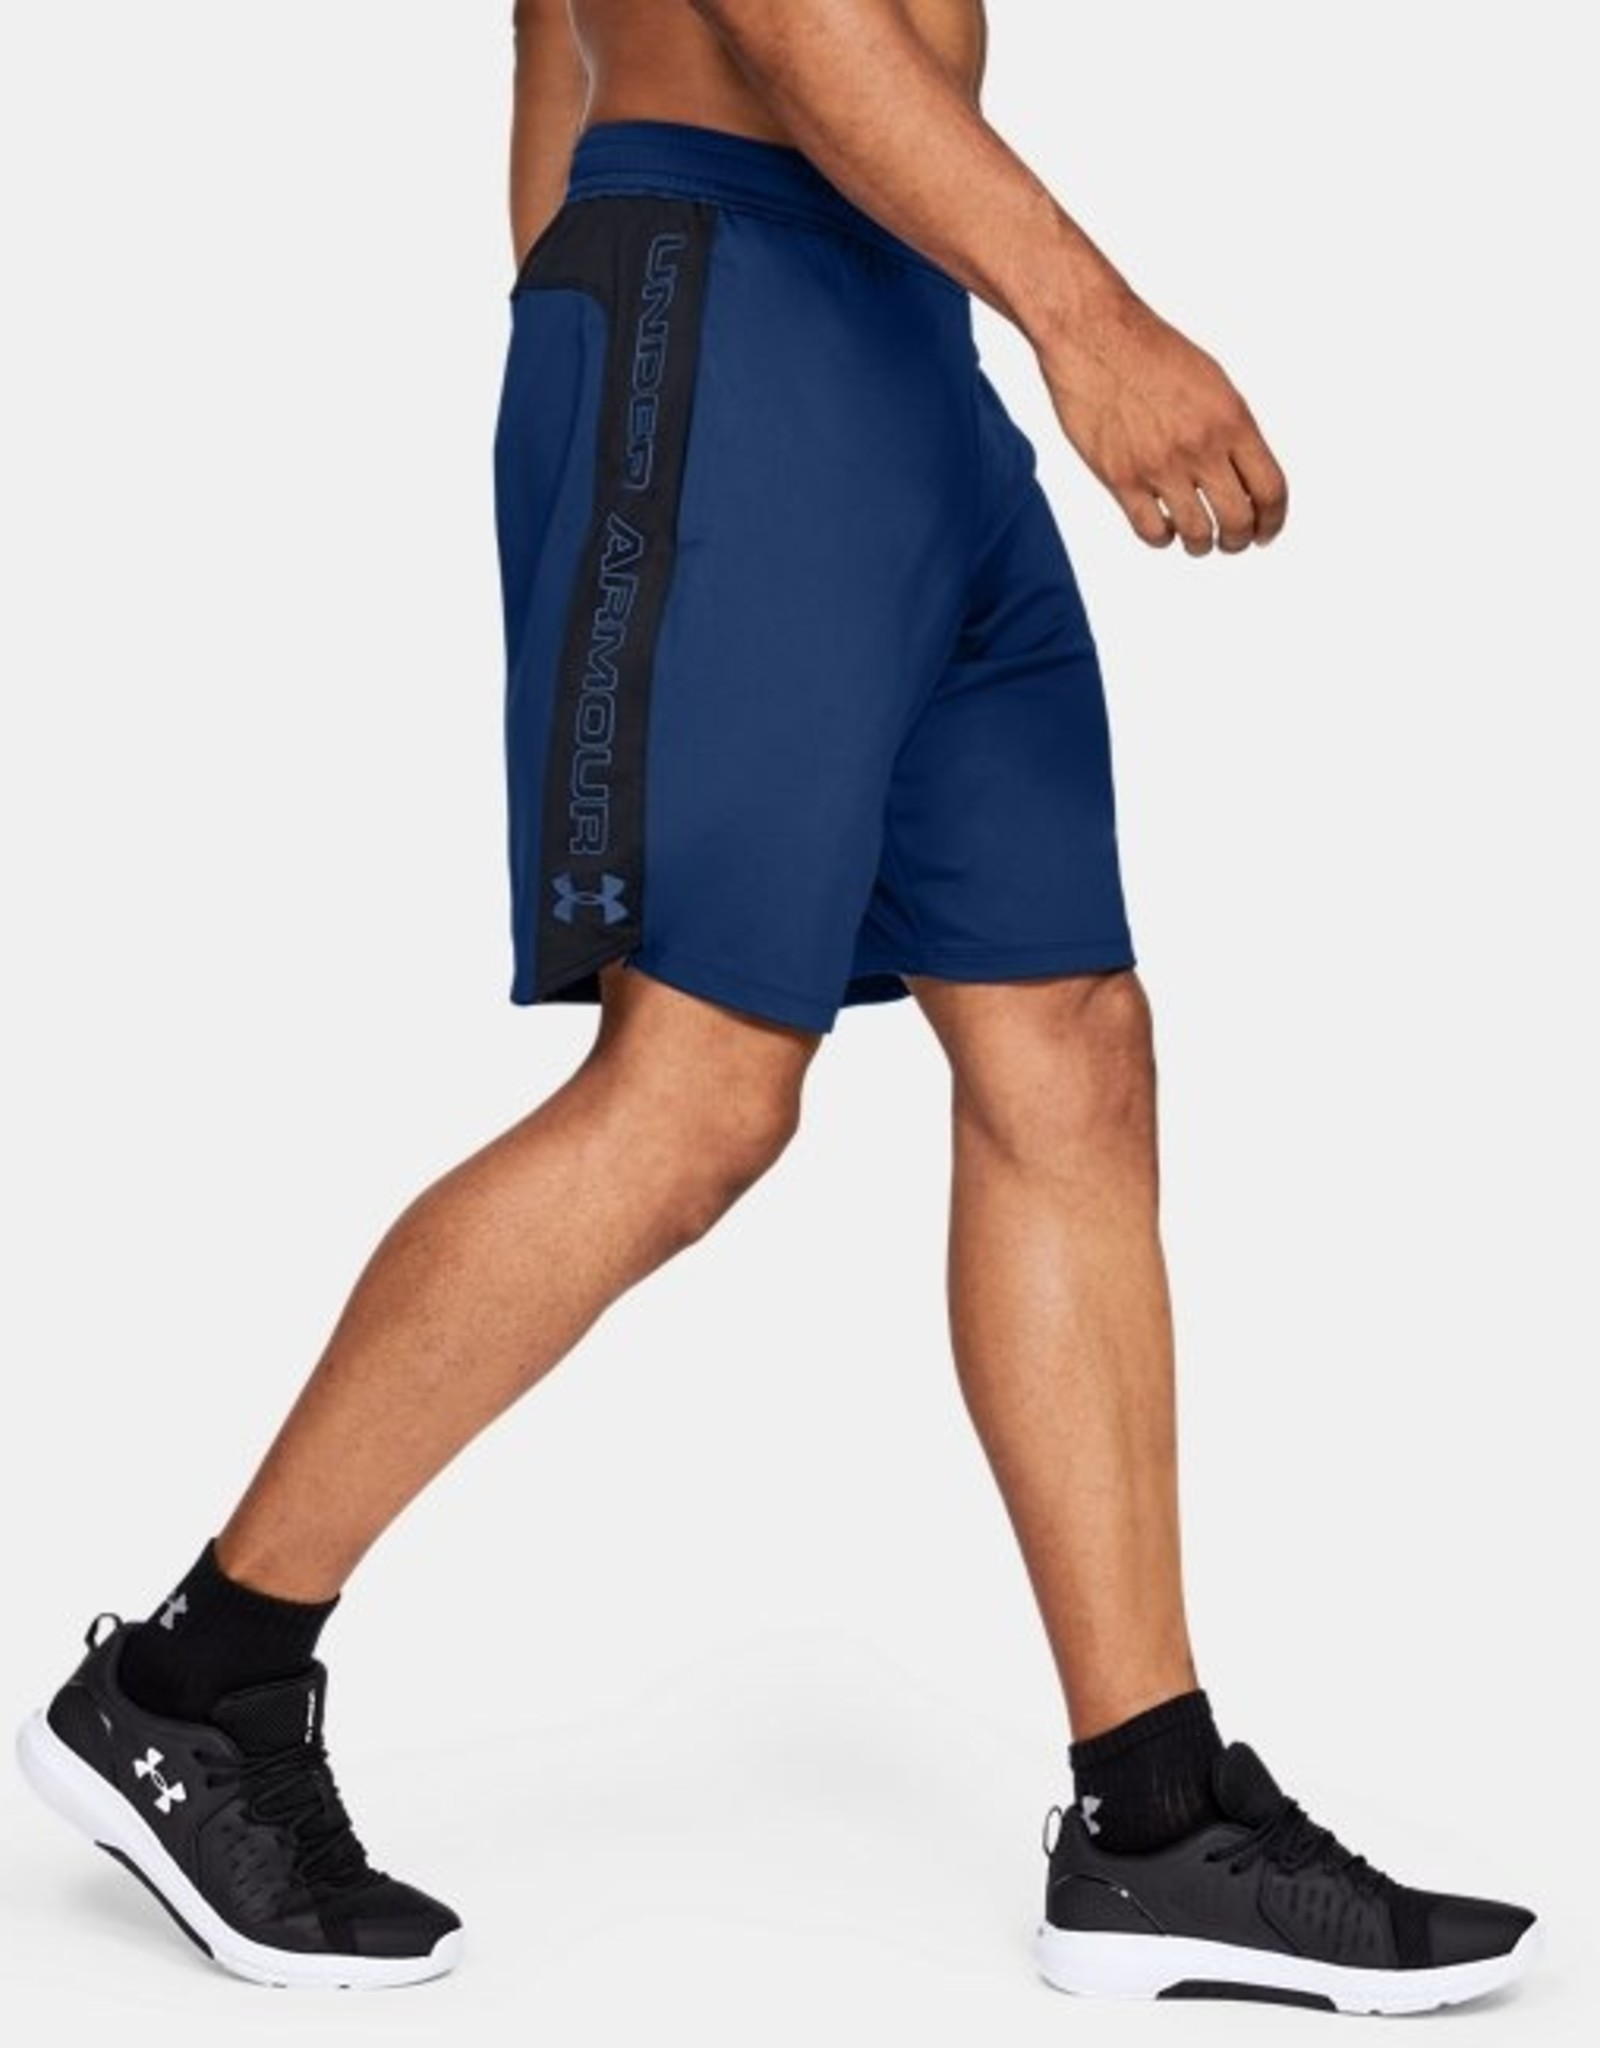 Under Armour MK1 Graphic Shorts - electric blue